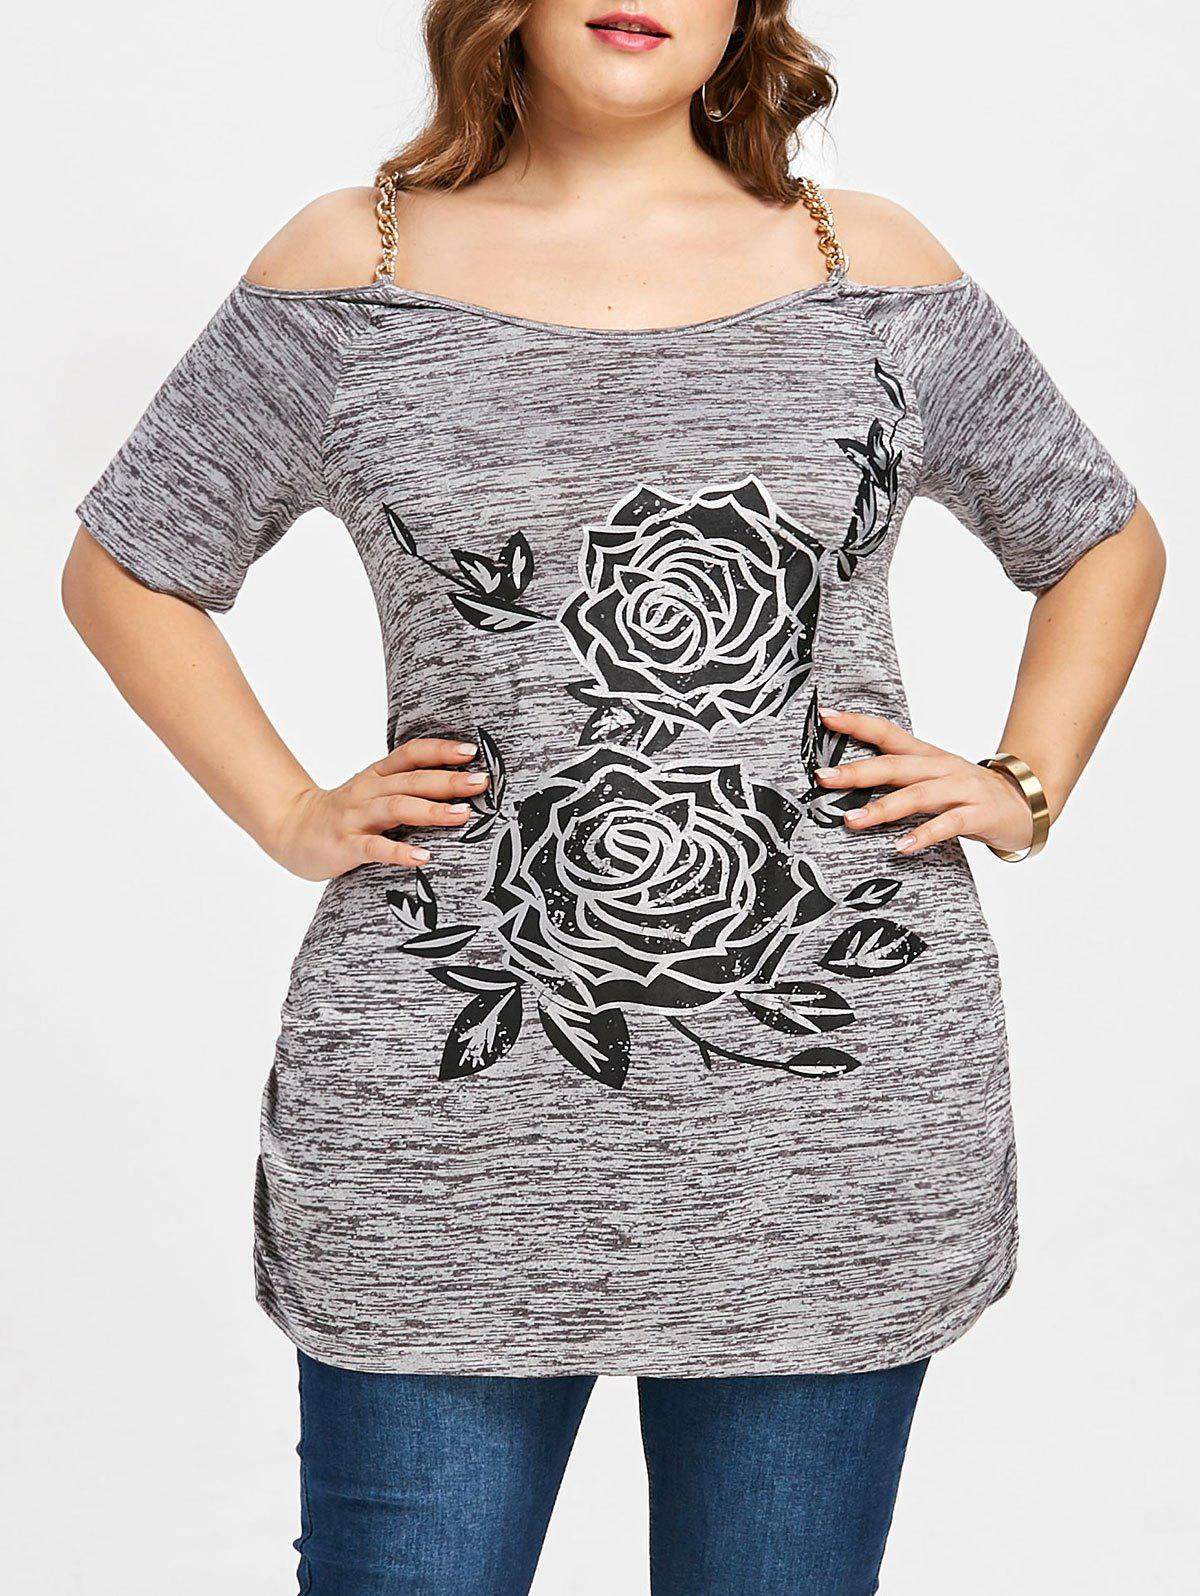 Plus Size Chains Embellished Floral T-shirt - COLORMIX 2XL